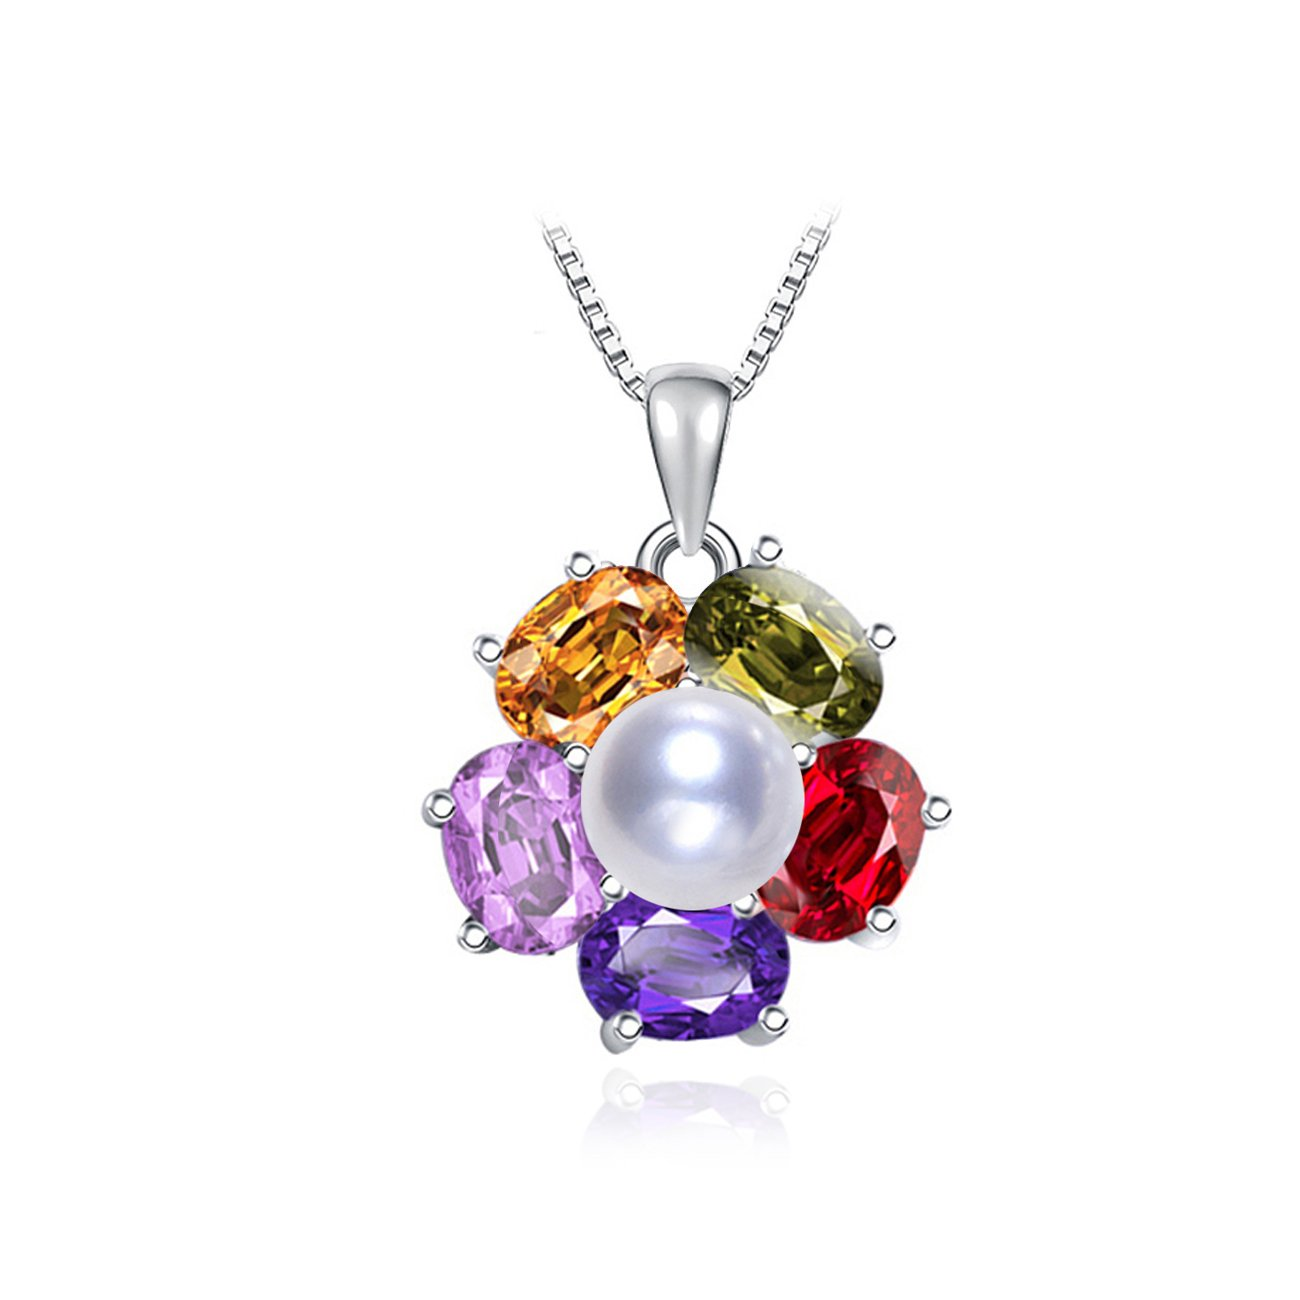 LSOOYH Bohemian Style Crystal Flower Necklace Pendant Simulation White Pearl Necklace for Women